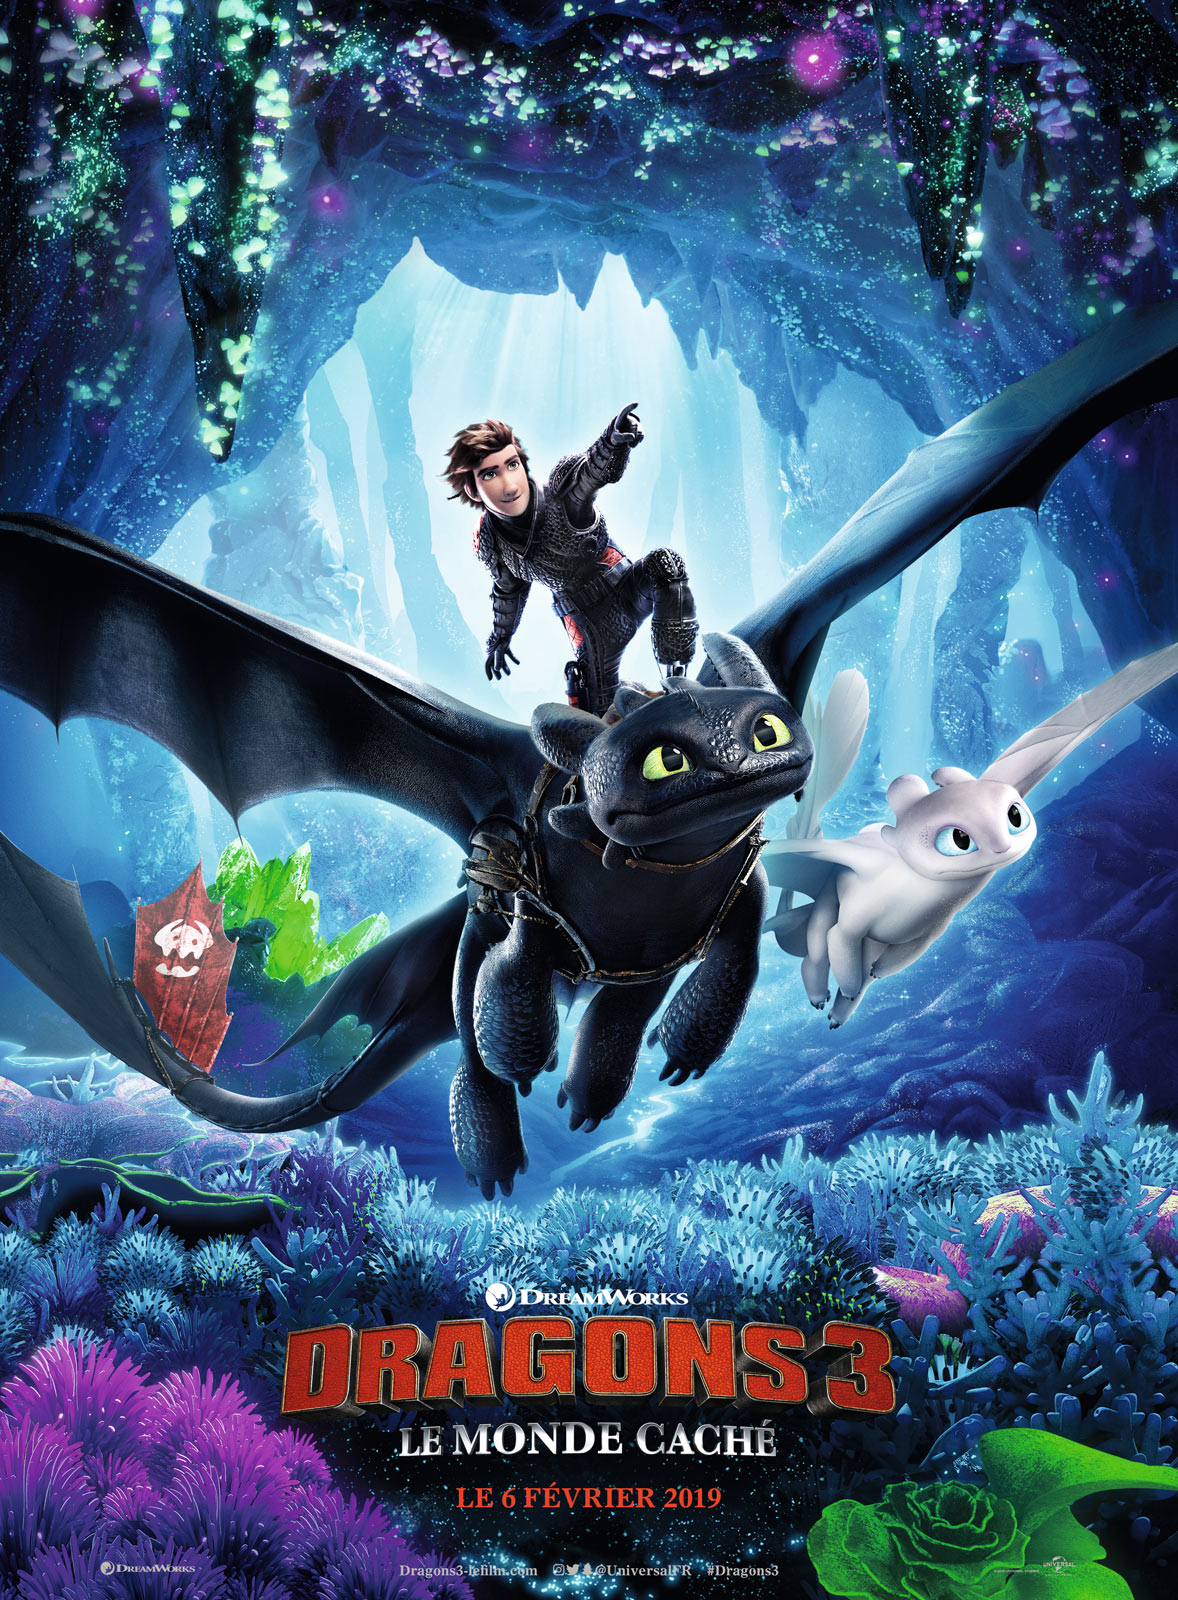 Dragon Inside Me Bande Annonce Vf : dragon, inside, bande, annonce, REGARDER]], Dragons, Monde, Caché, Complet, Streaming, Vostfr:, Home: